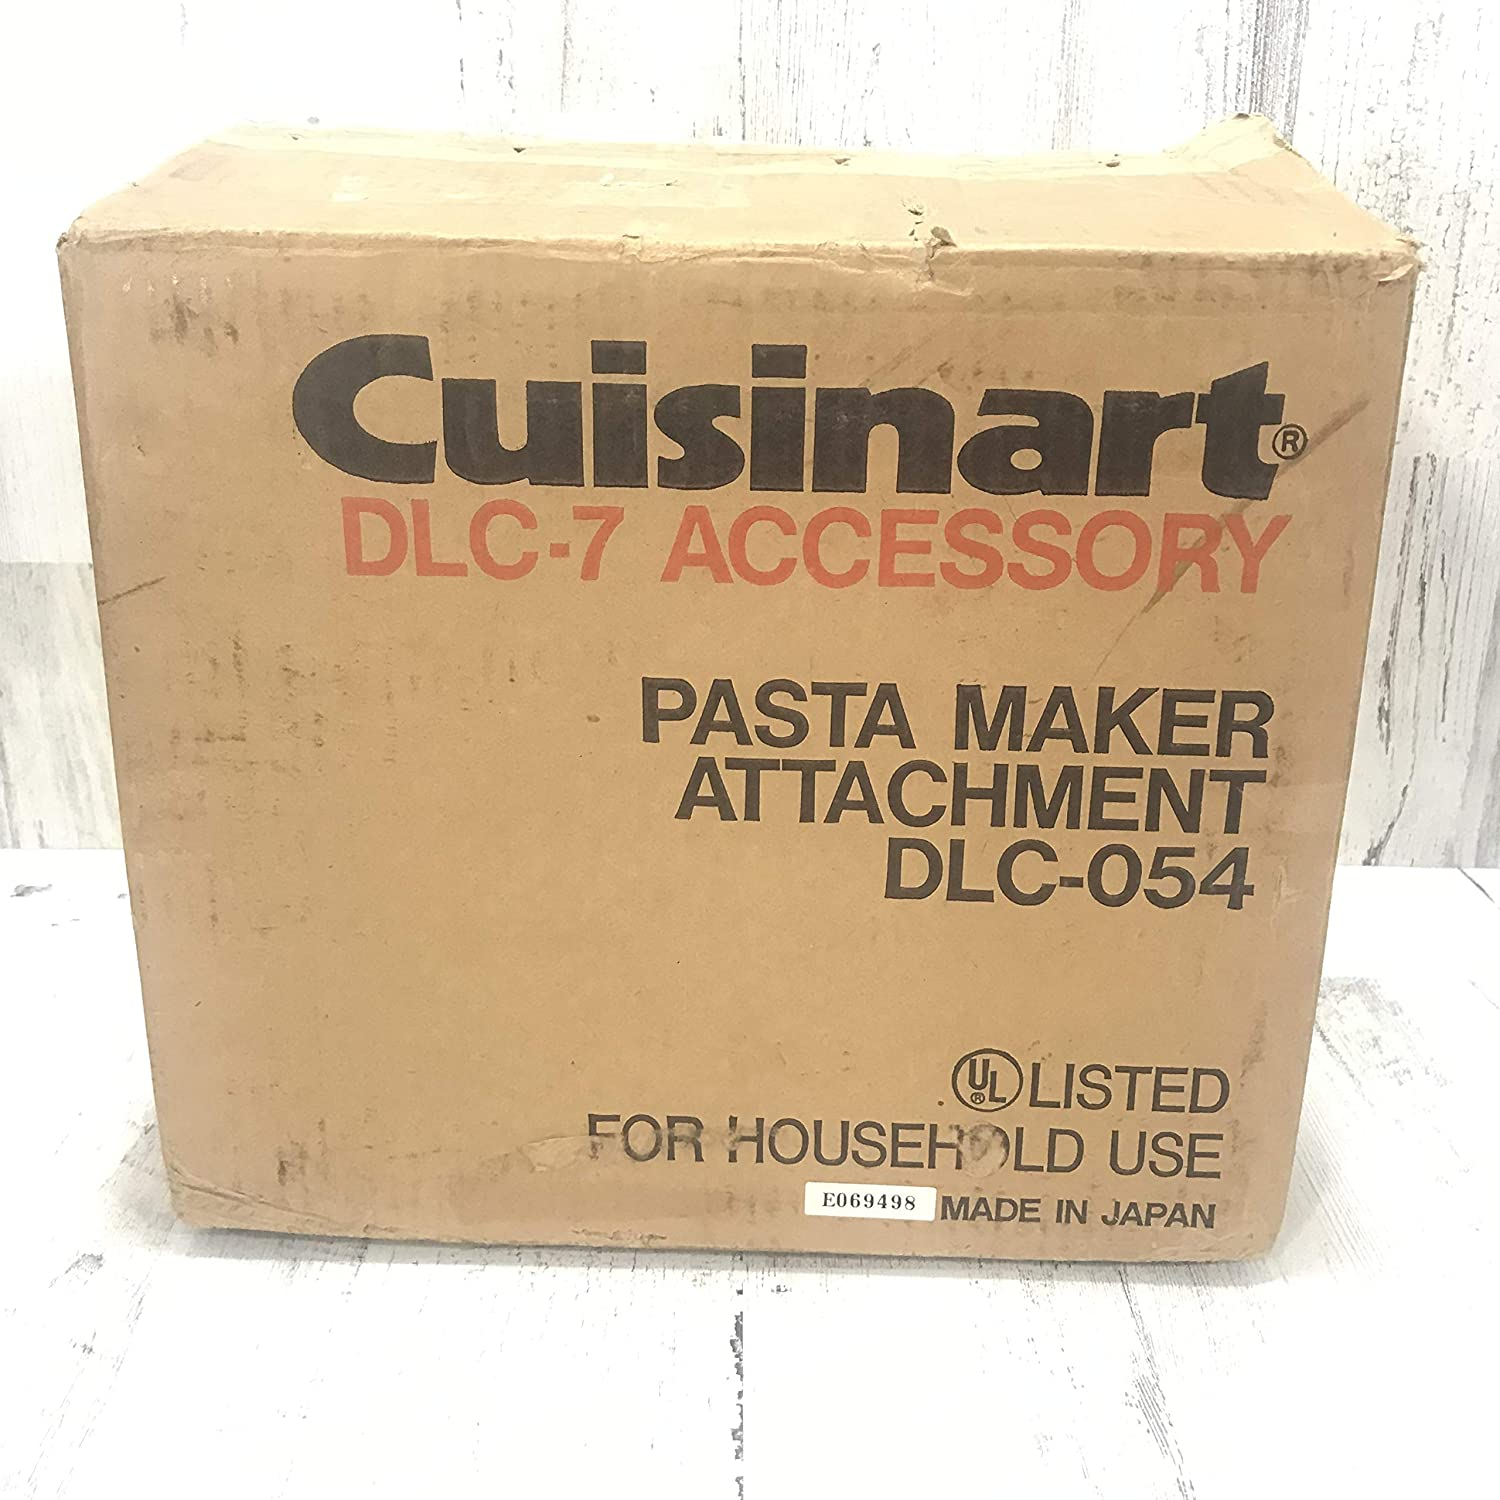 Cuisinart DLC-054 Pasta Maker Attachment (for DLC-7 Food Processor)